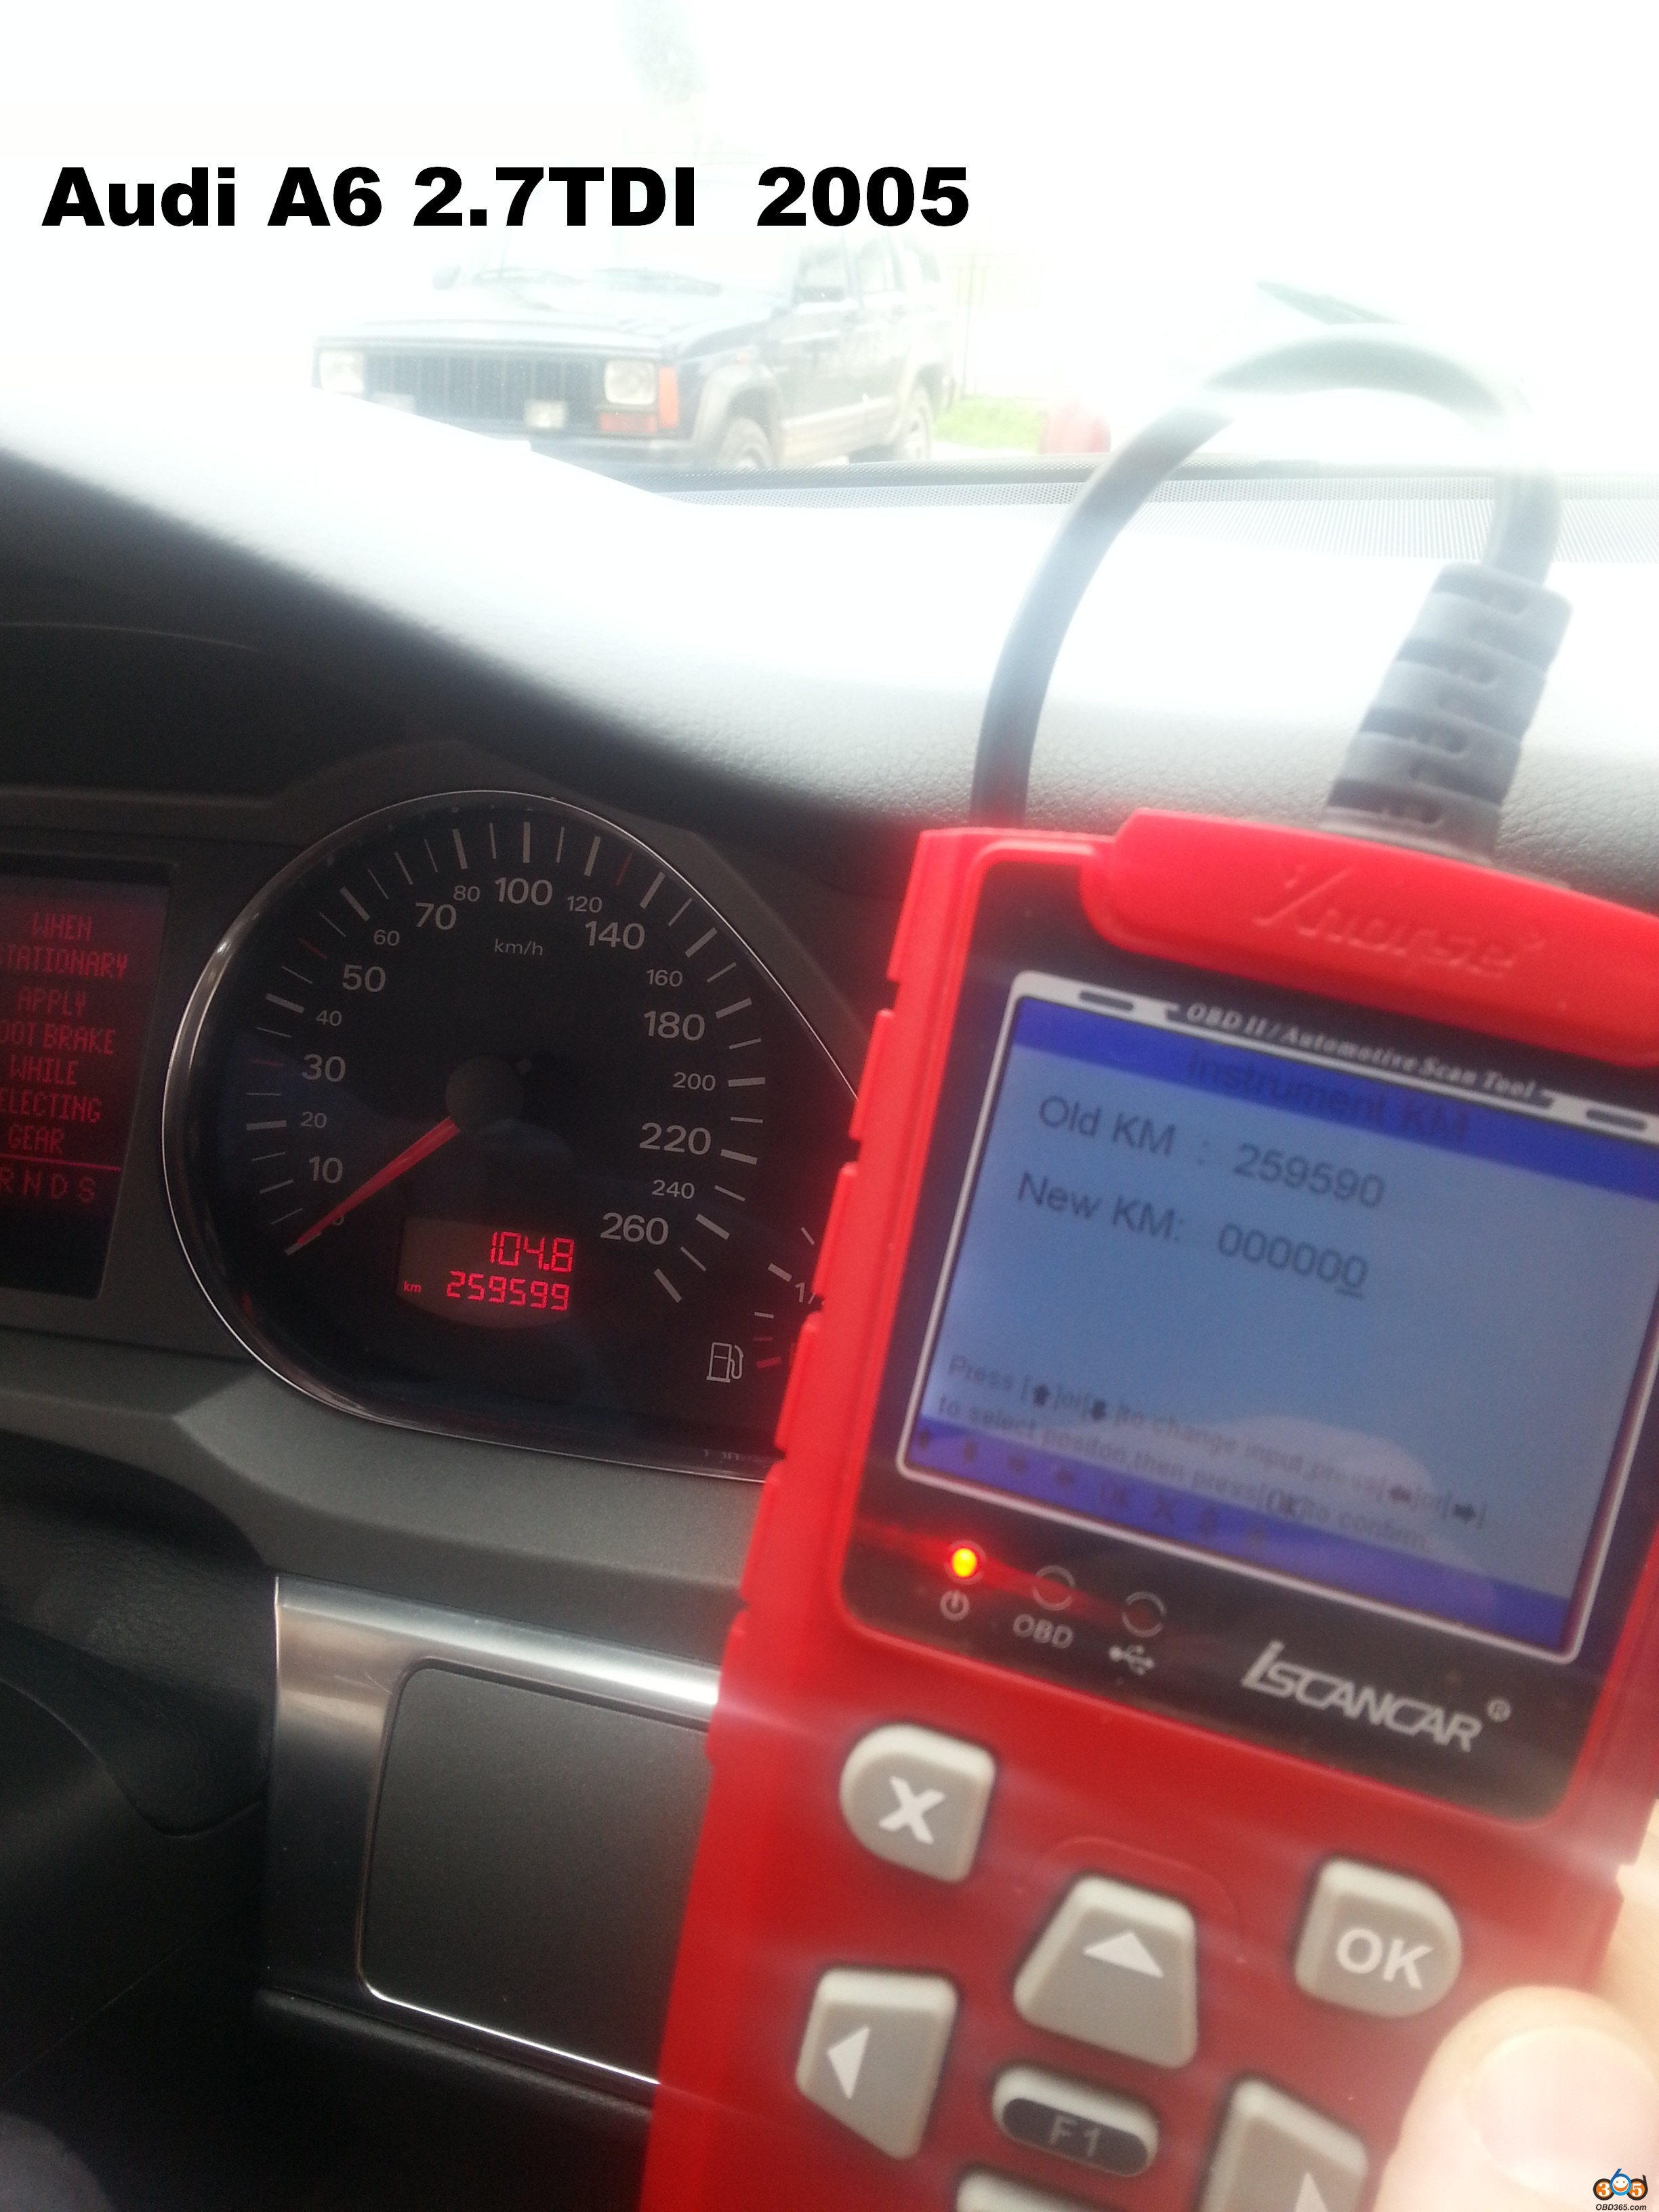 Super Vag Iscanner Odometer Dash Display Functions